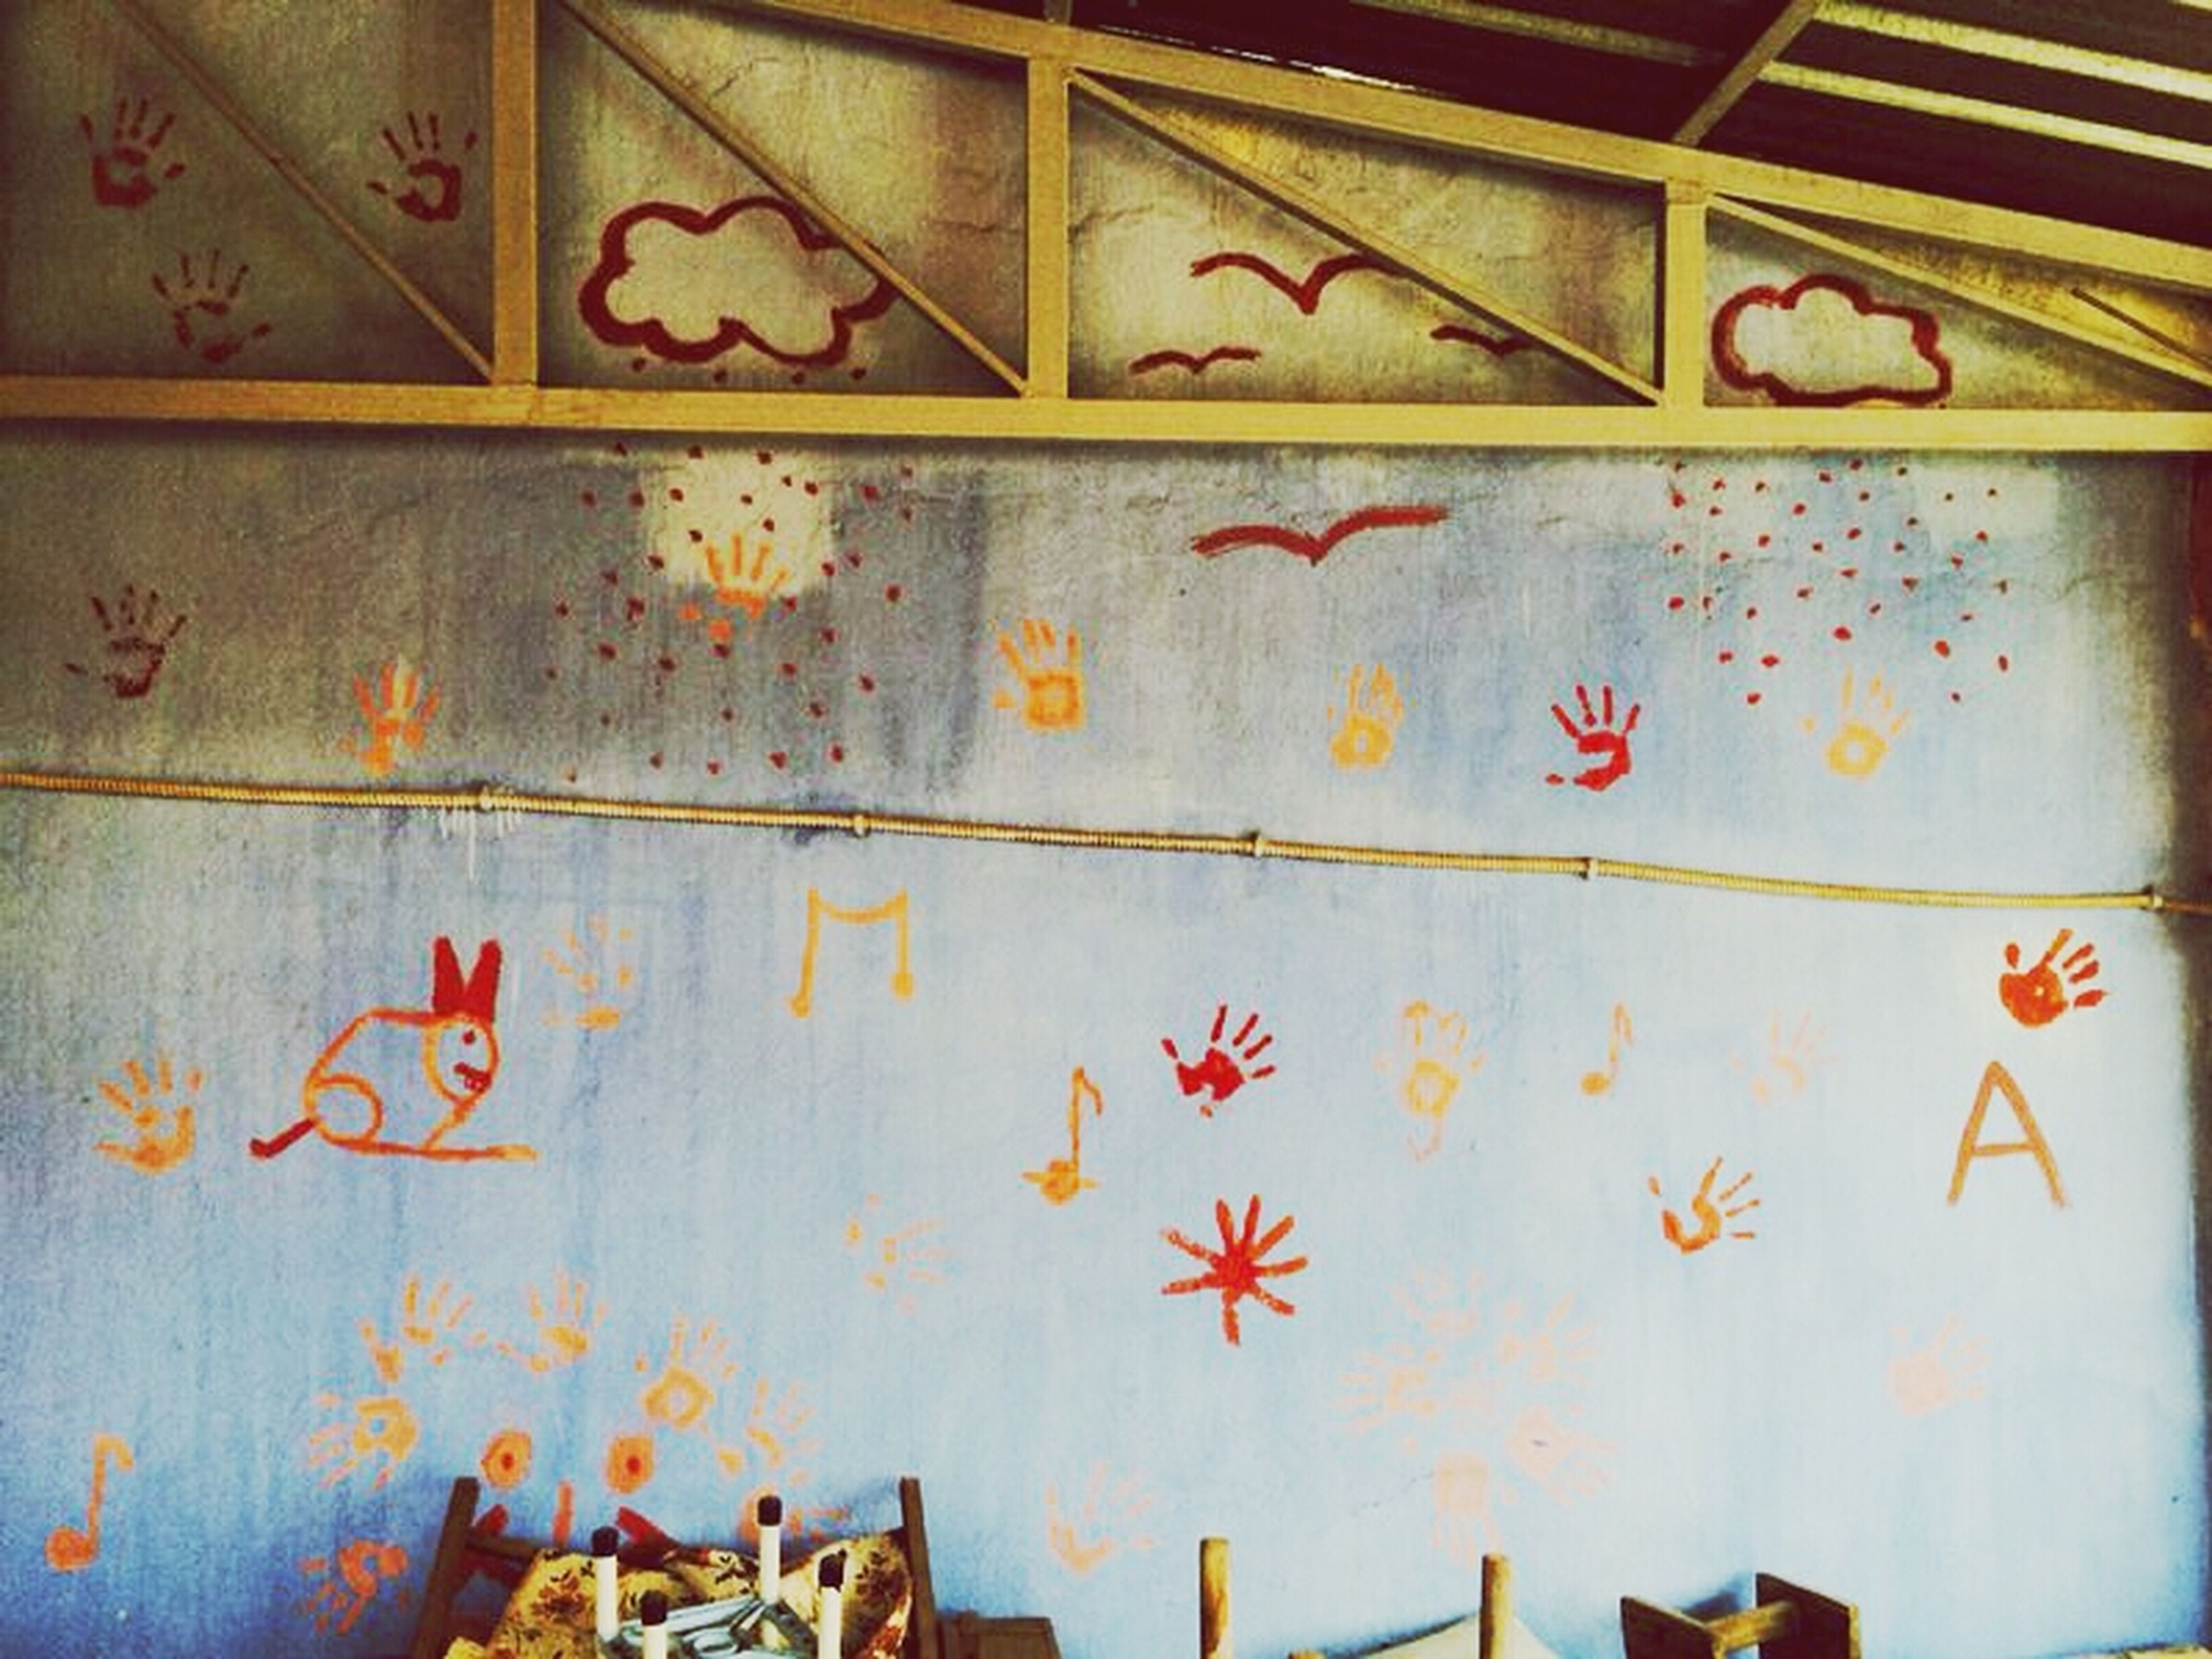 graffiti, creativity, art and craft, art, wall - building feature, indoors, built structure, architecture, multi colored, wall, wood - material, abandoned, old, text, wooden, pattern, no people, design, door, damaged